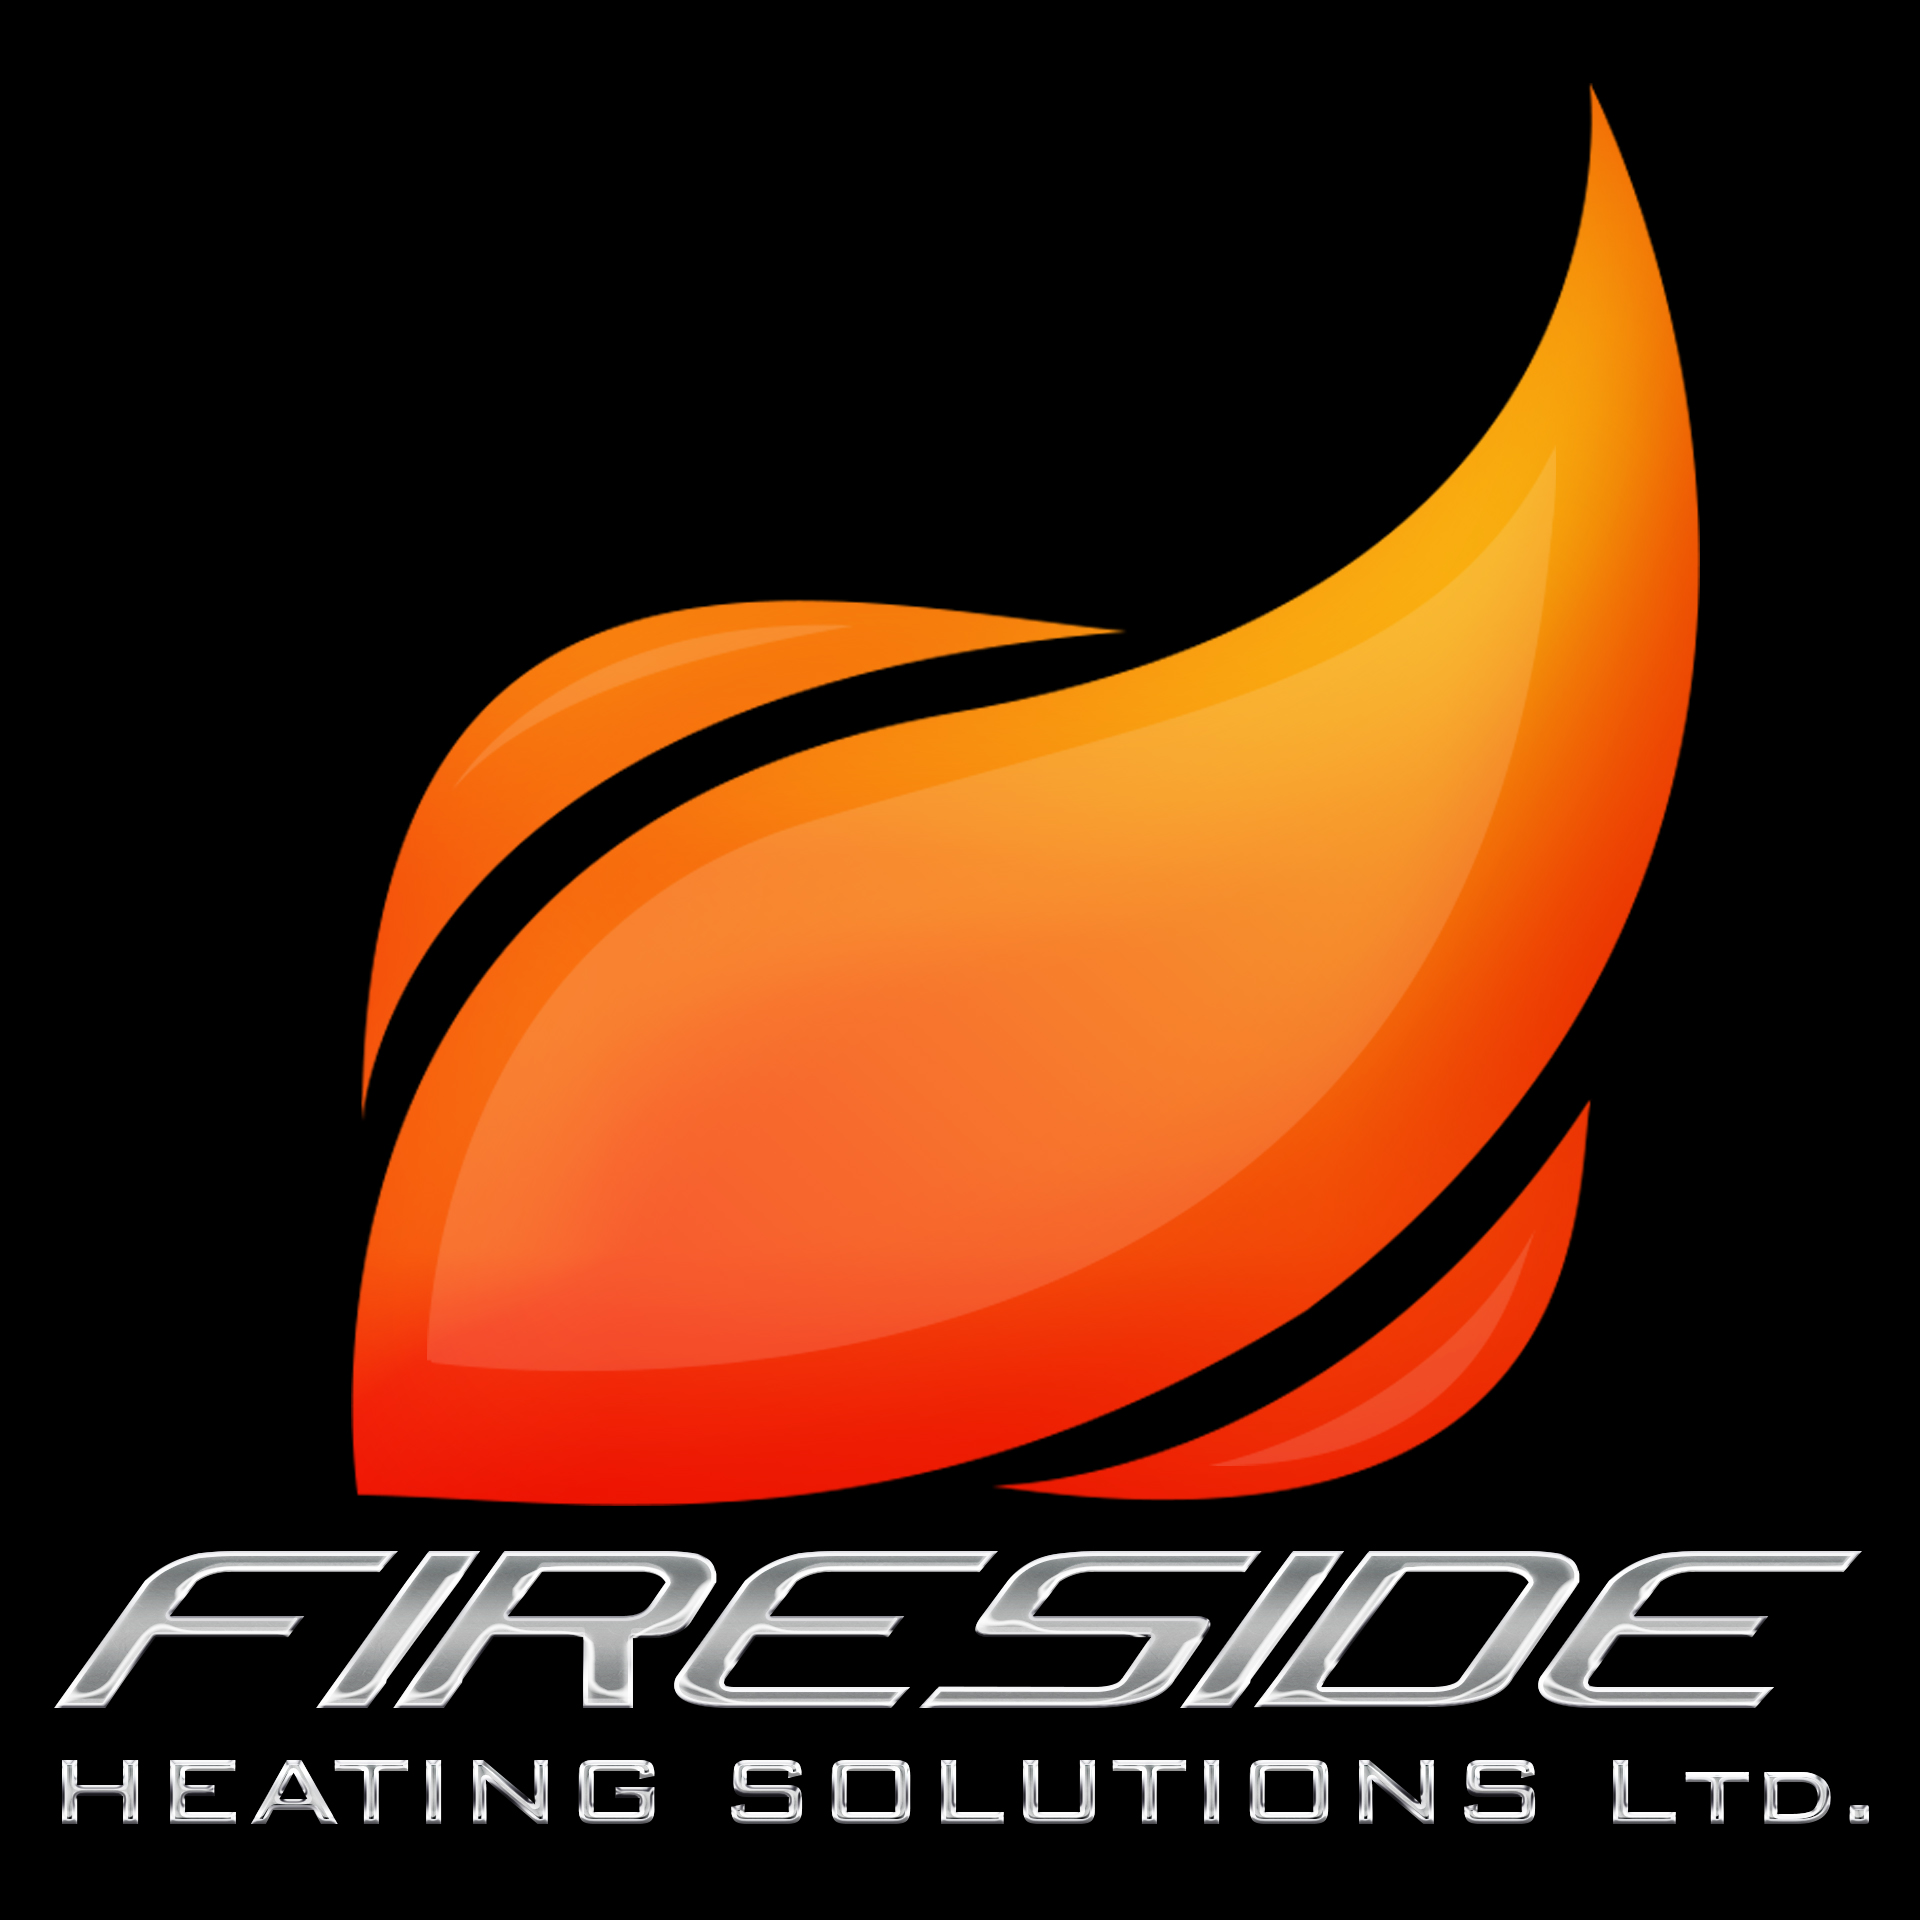 Logo Design by chAnDOS - Entry No. 118 in the Logo Design Contest Creative Logo Design for Fireside Heating Solutions Ltd..